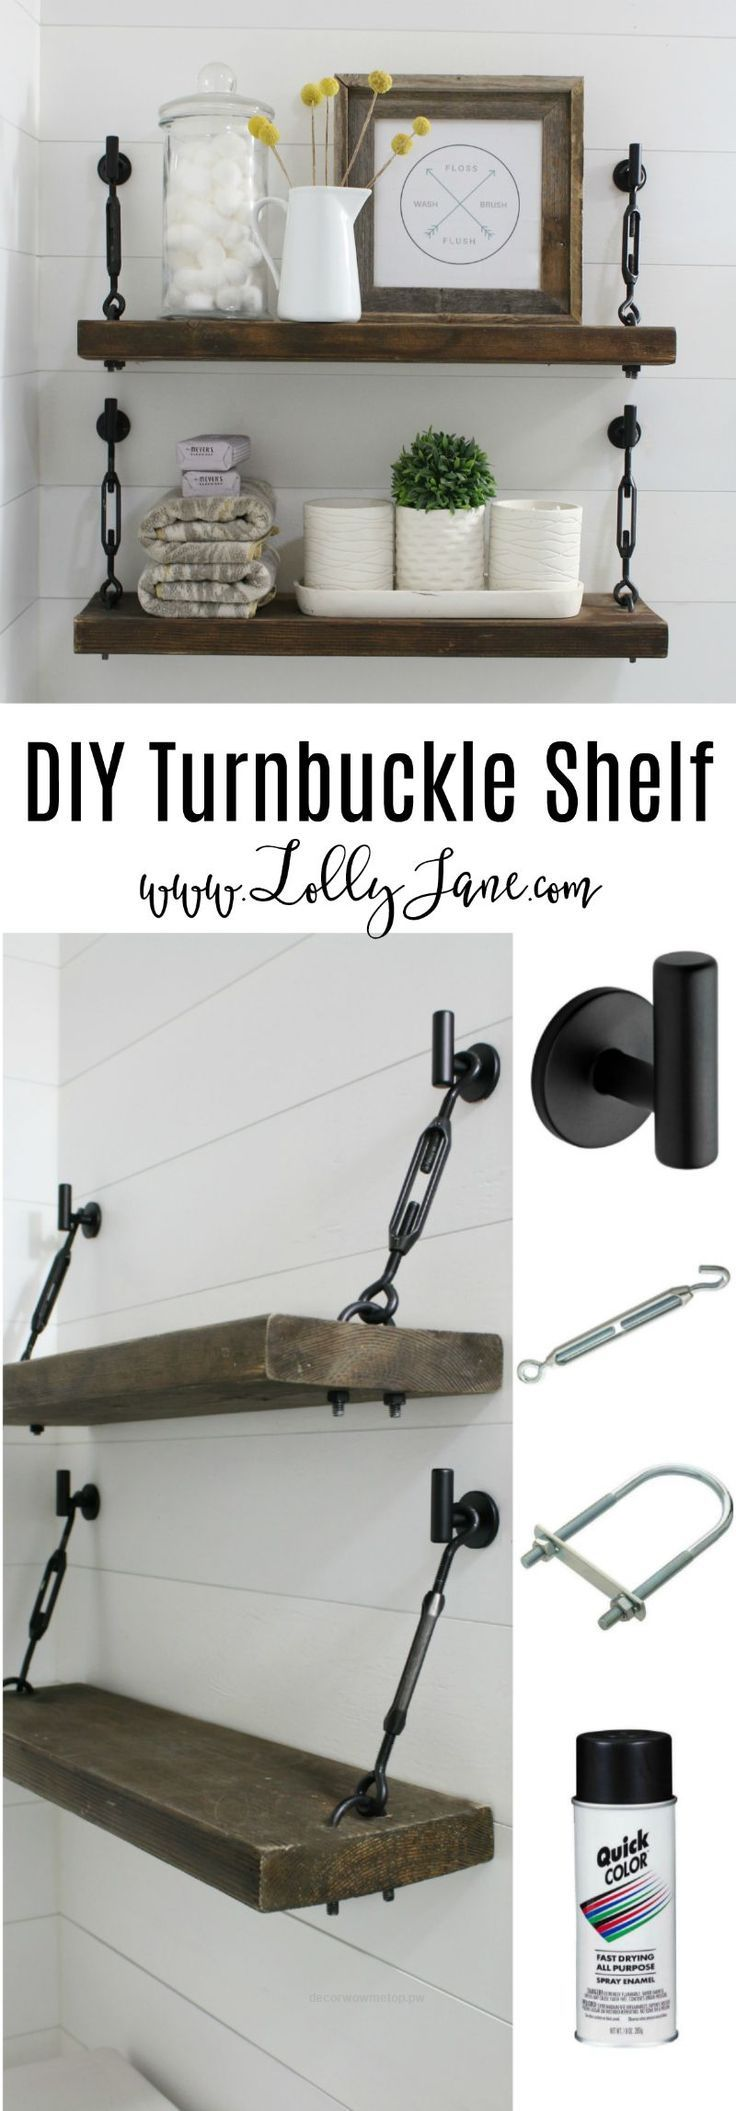 Great DIY Turnbuckle Shelf tutorial   Learn how easy it is to make these bathroom turnbuckle shelves! These would be so cute in any room of the house, farmhouse chic shelves look great and are sturdy enough for all your home decor needs!  The post  DIY Turnbuckle Shelf t ..